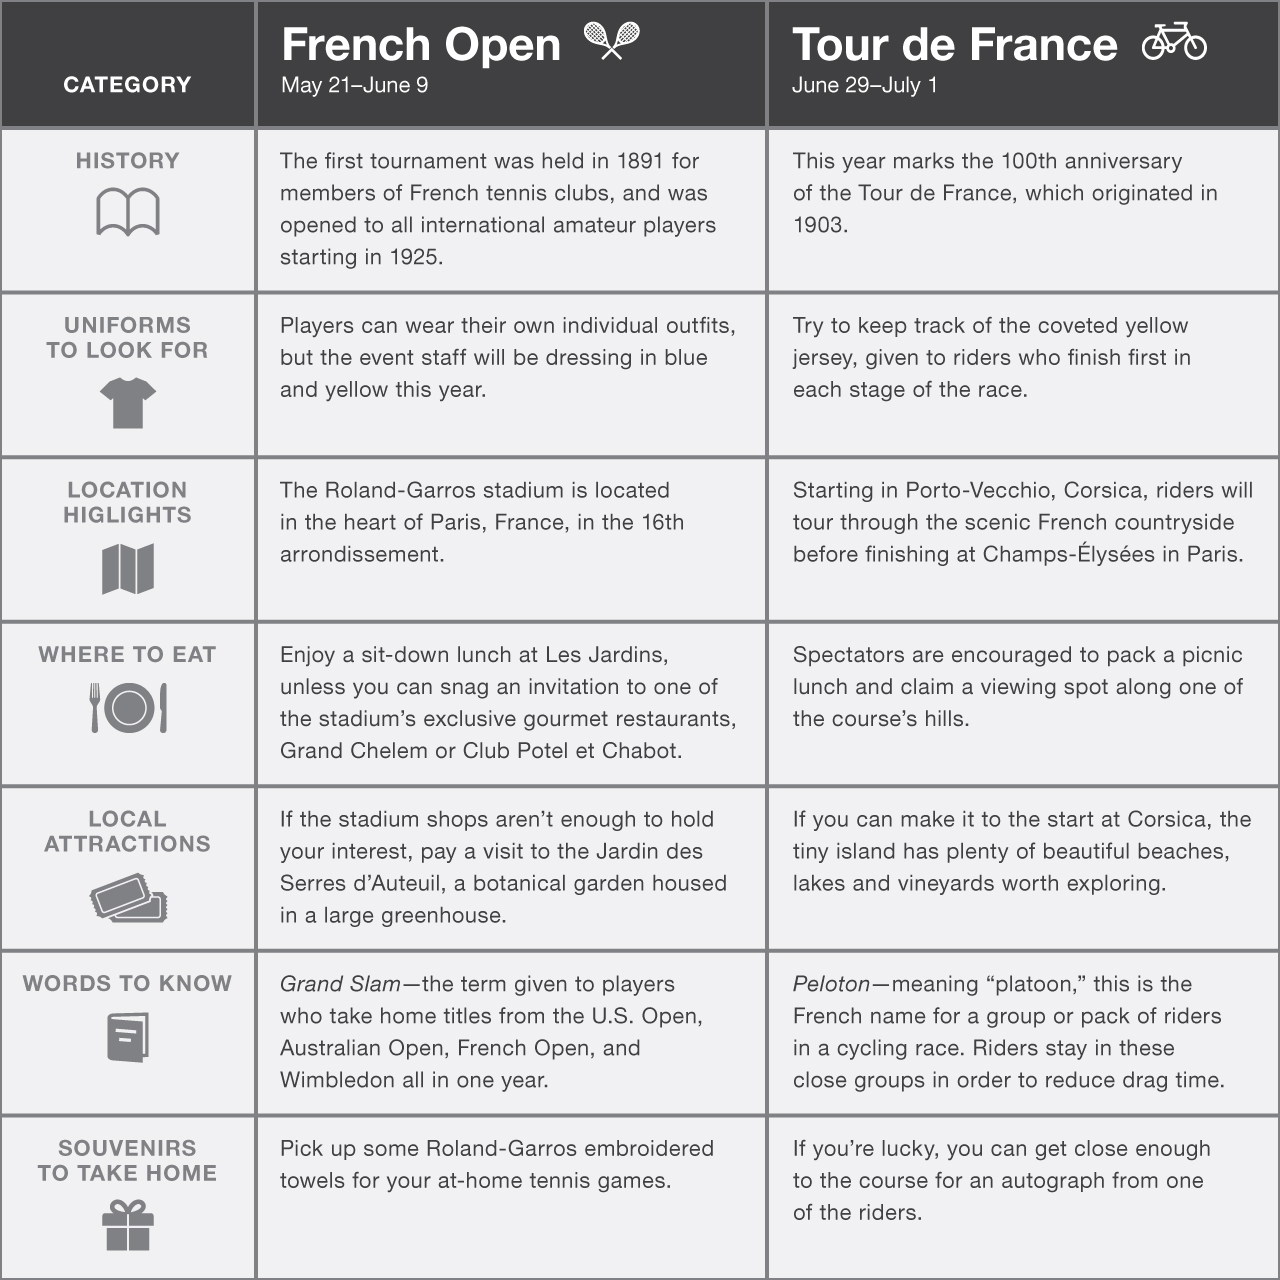 Comparing the French Open and the Tour de France